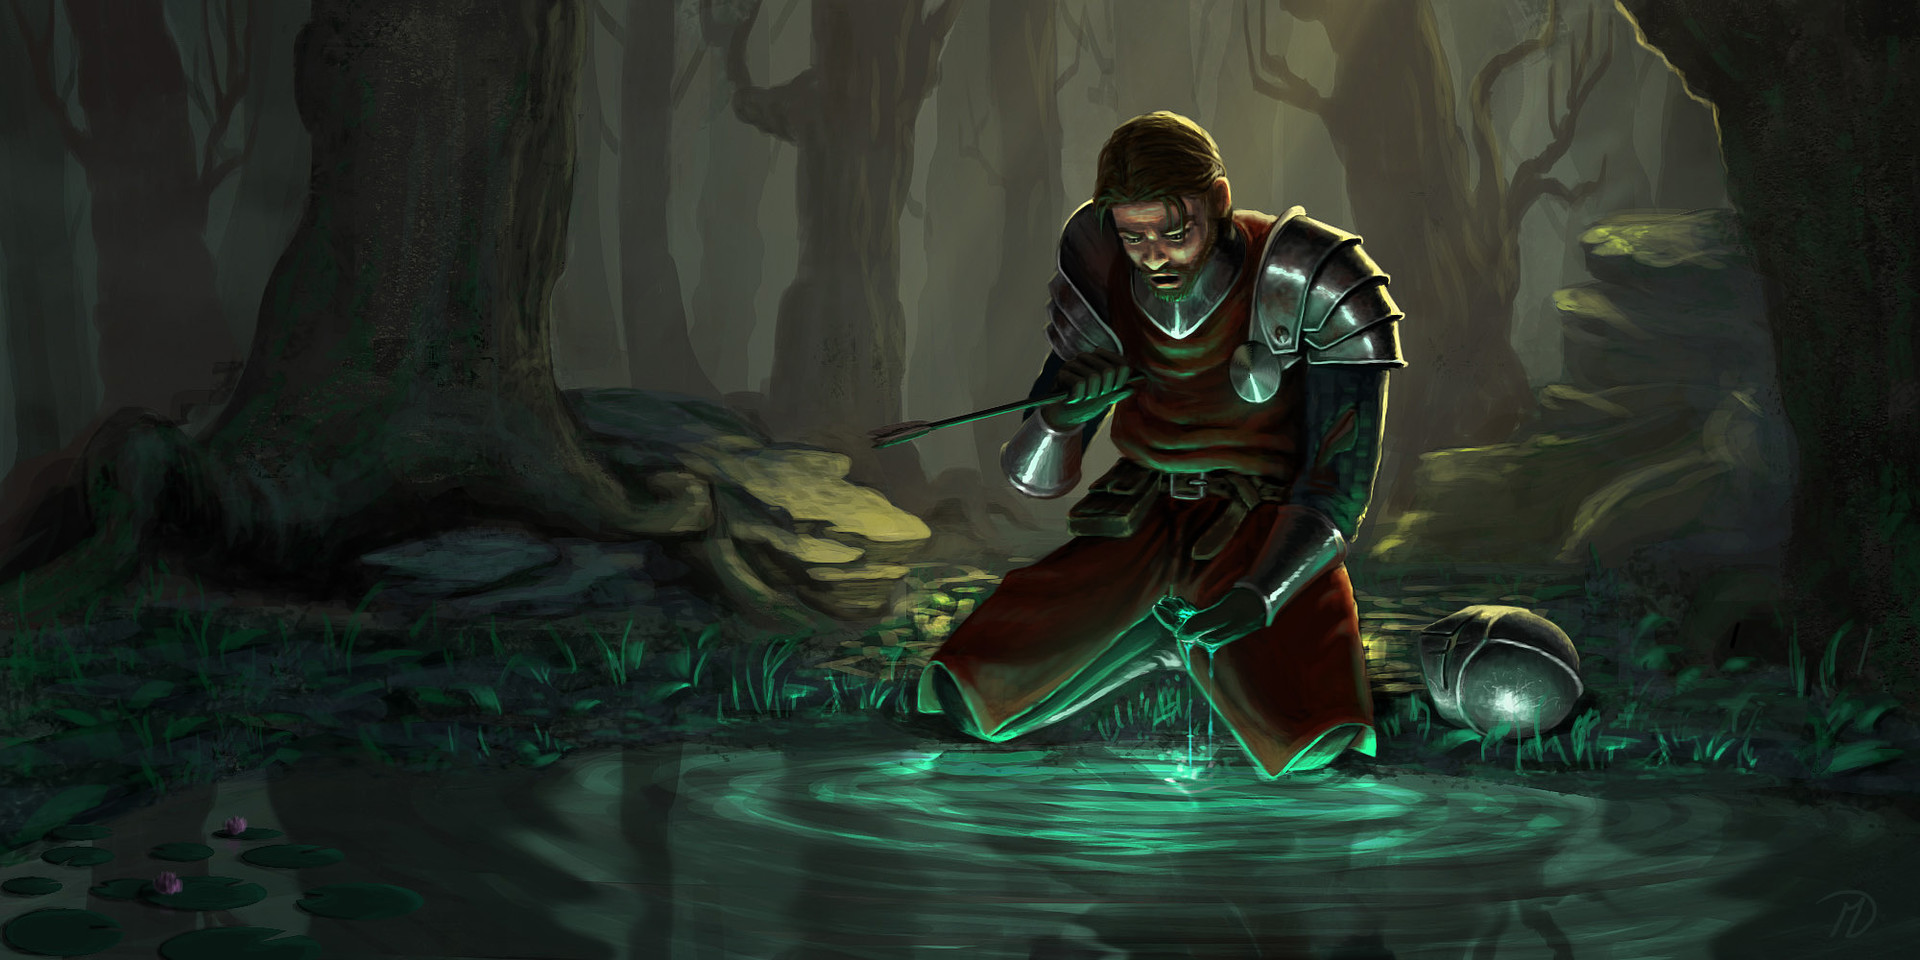 maxime-defoulny-woundedknightmagiclake-copie11